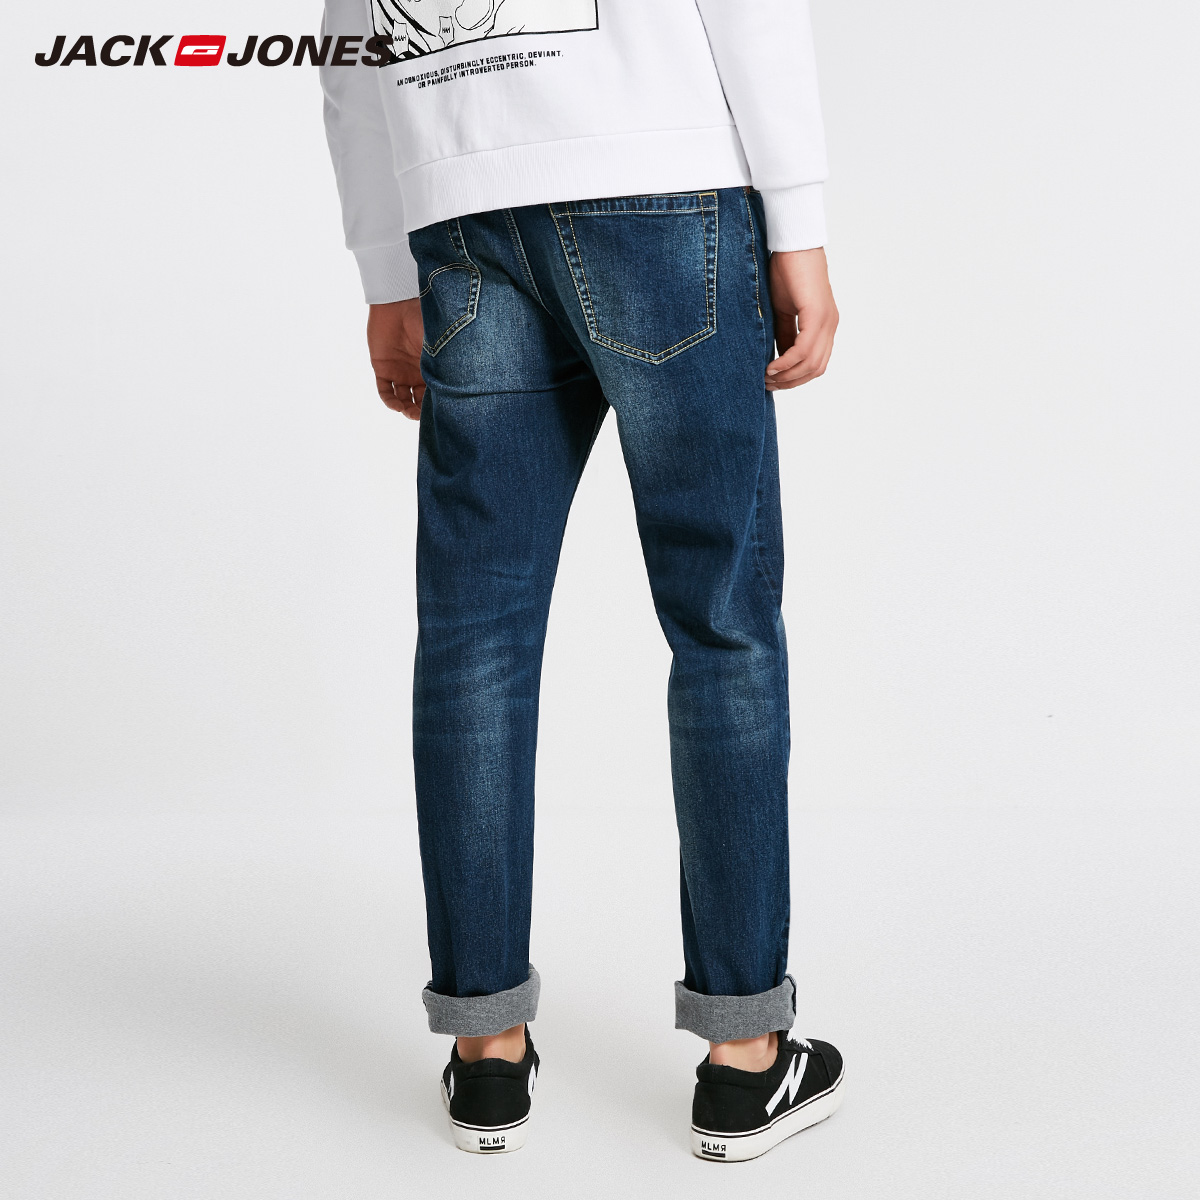 Image 3 - Jack Jones Men Jeans Brand Thick Warm Cotton Solid Straight Jeans Denim Trousers Mens Biker Jeans  218432505-in Jeans from Men's Clothing